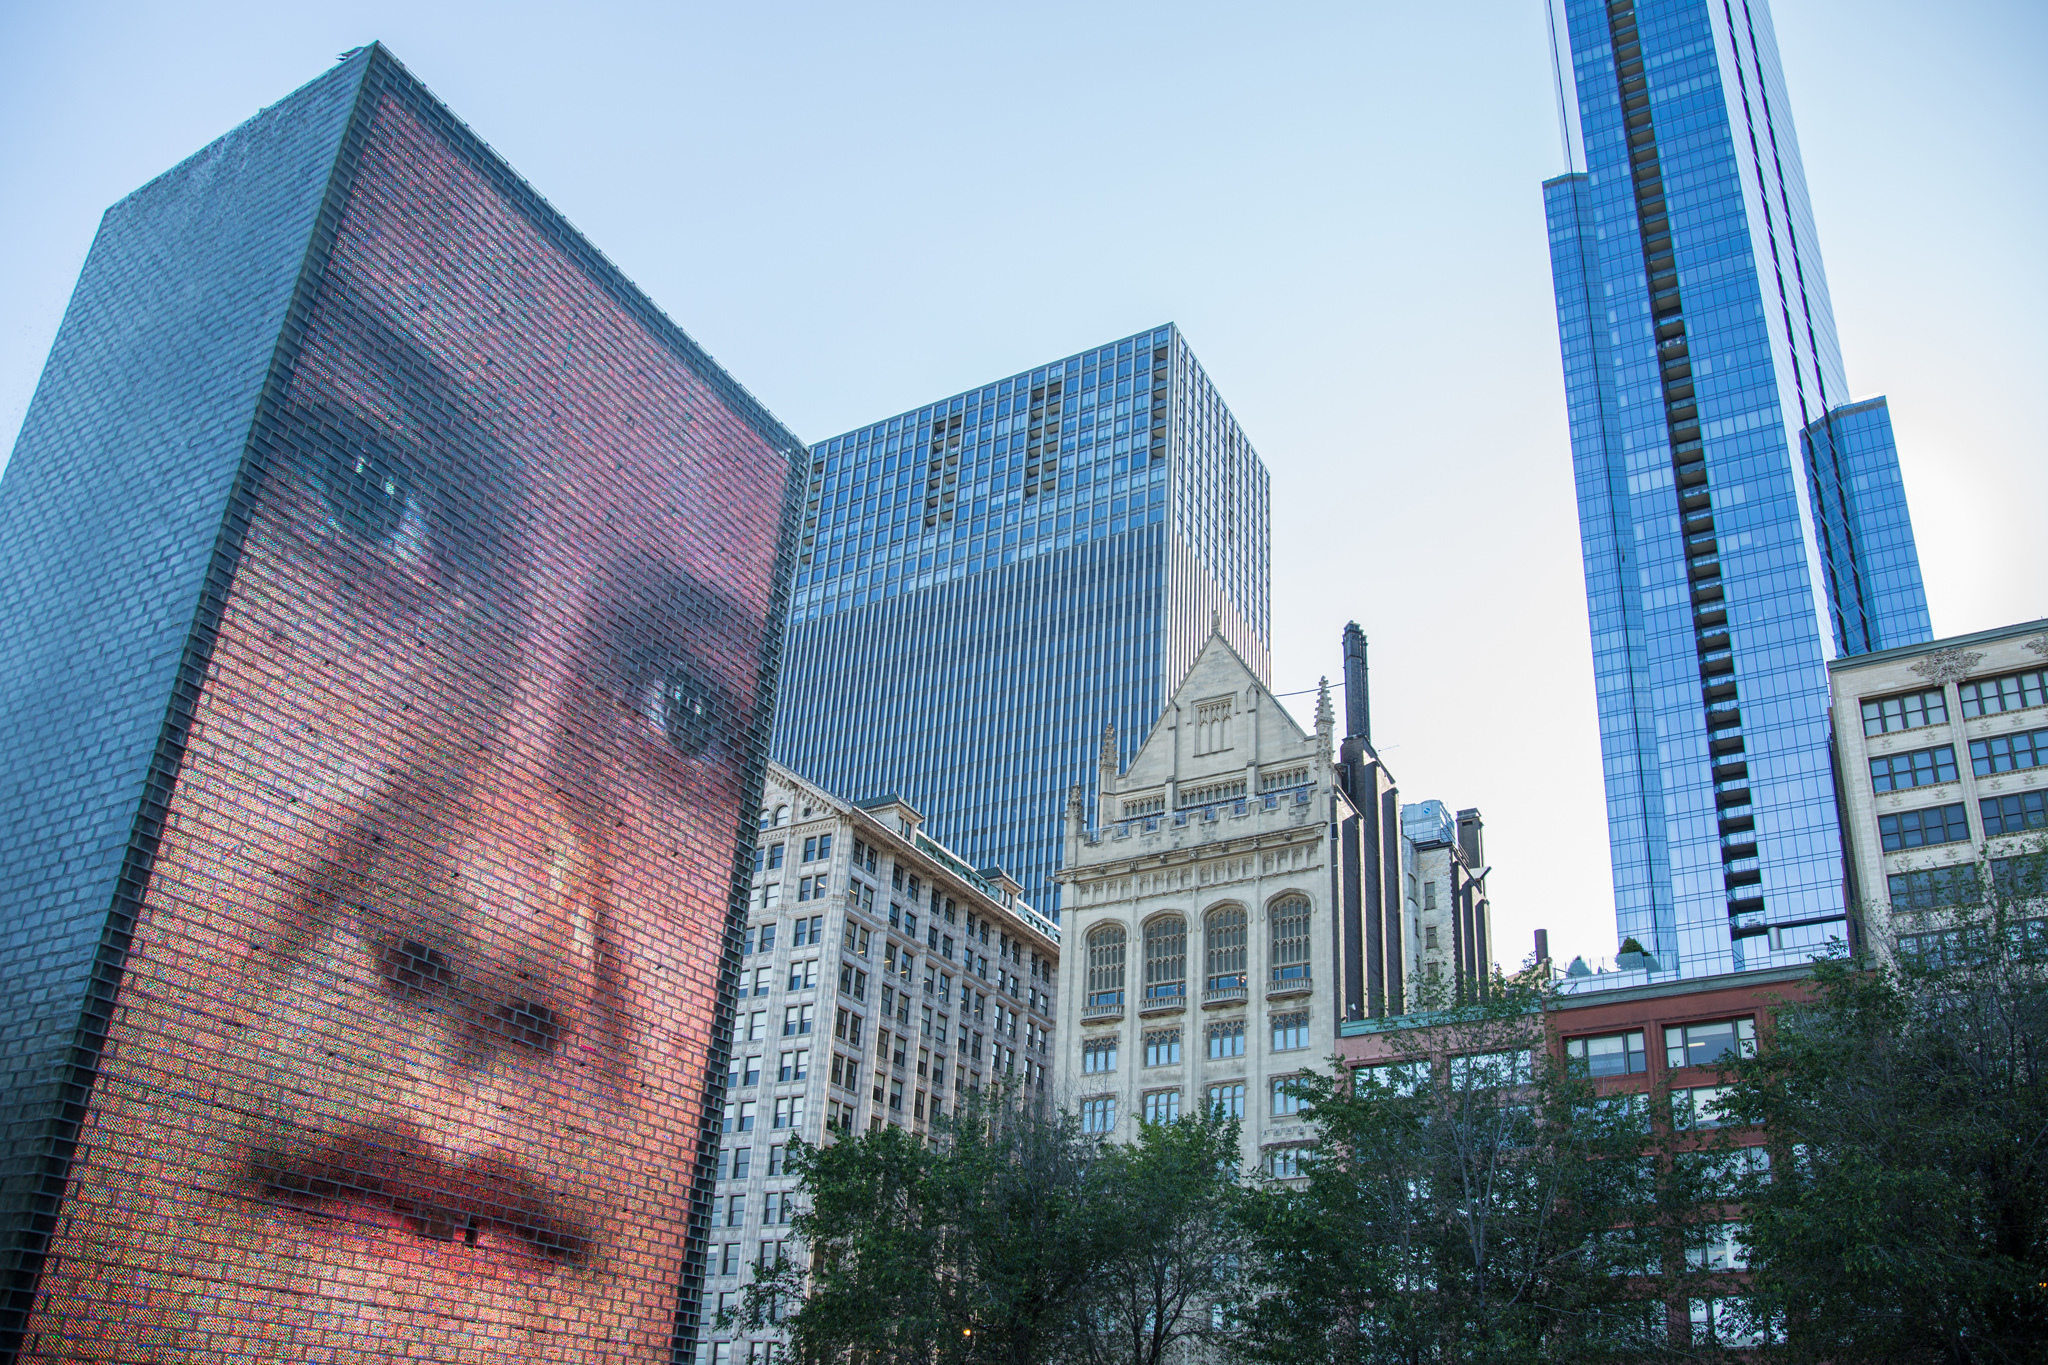 Crown Fountain reopens on Saturday with enhanced LED displays